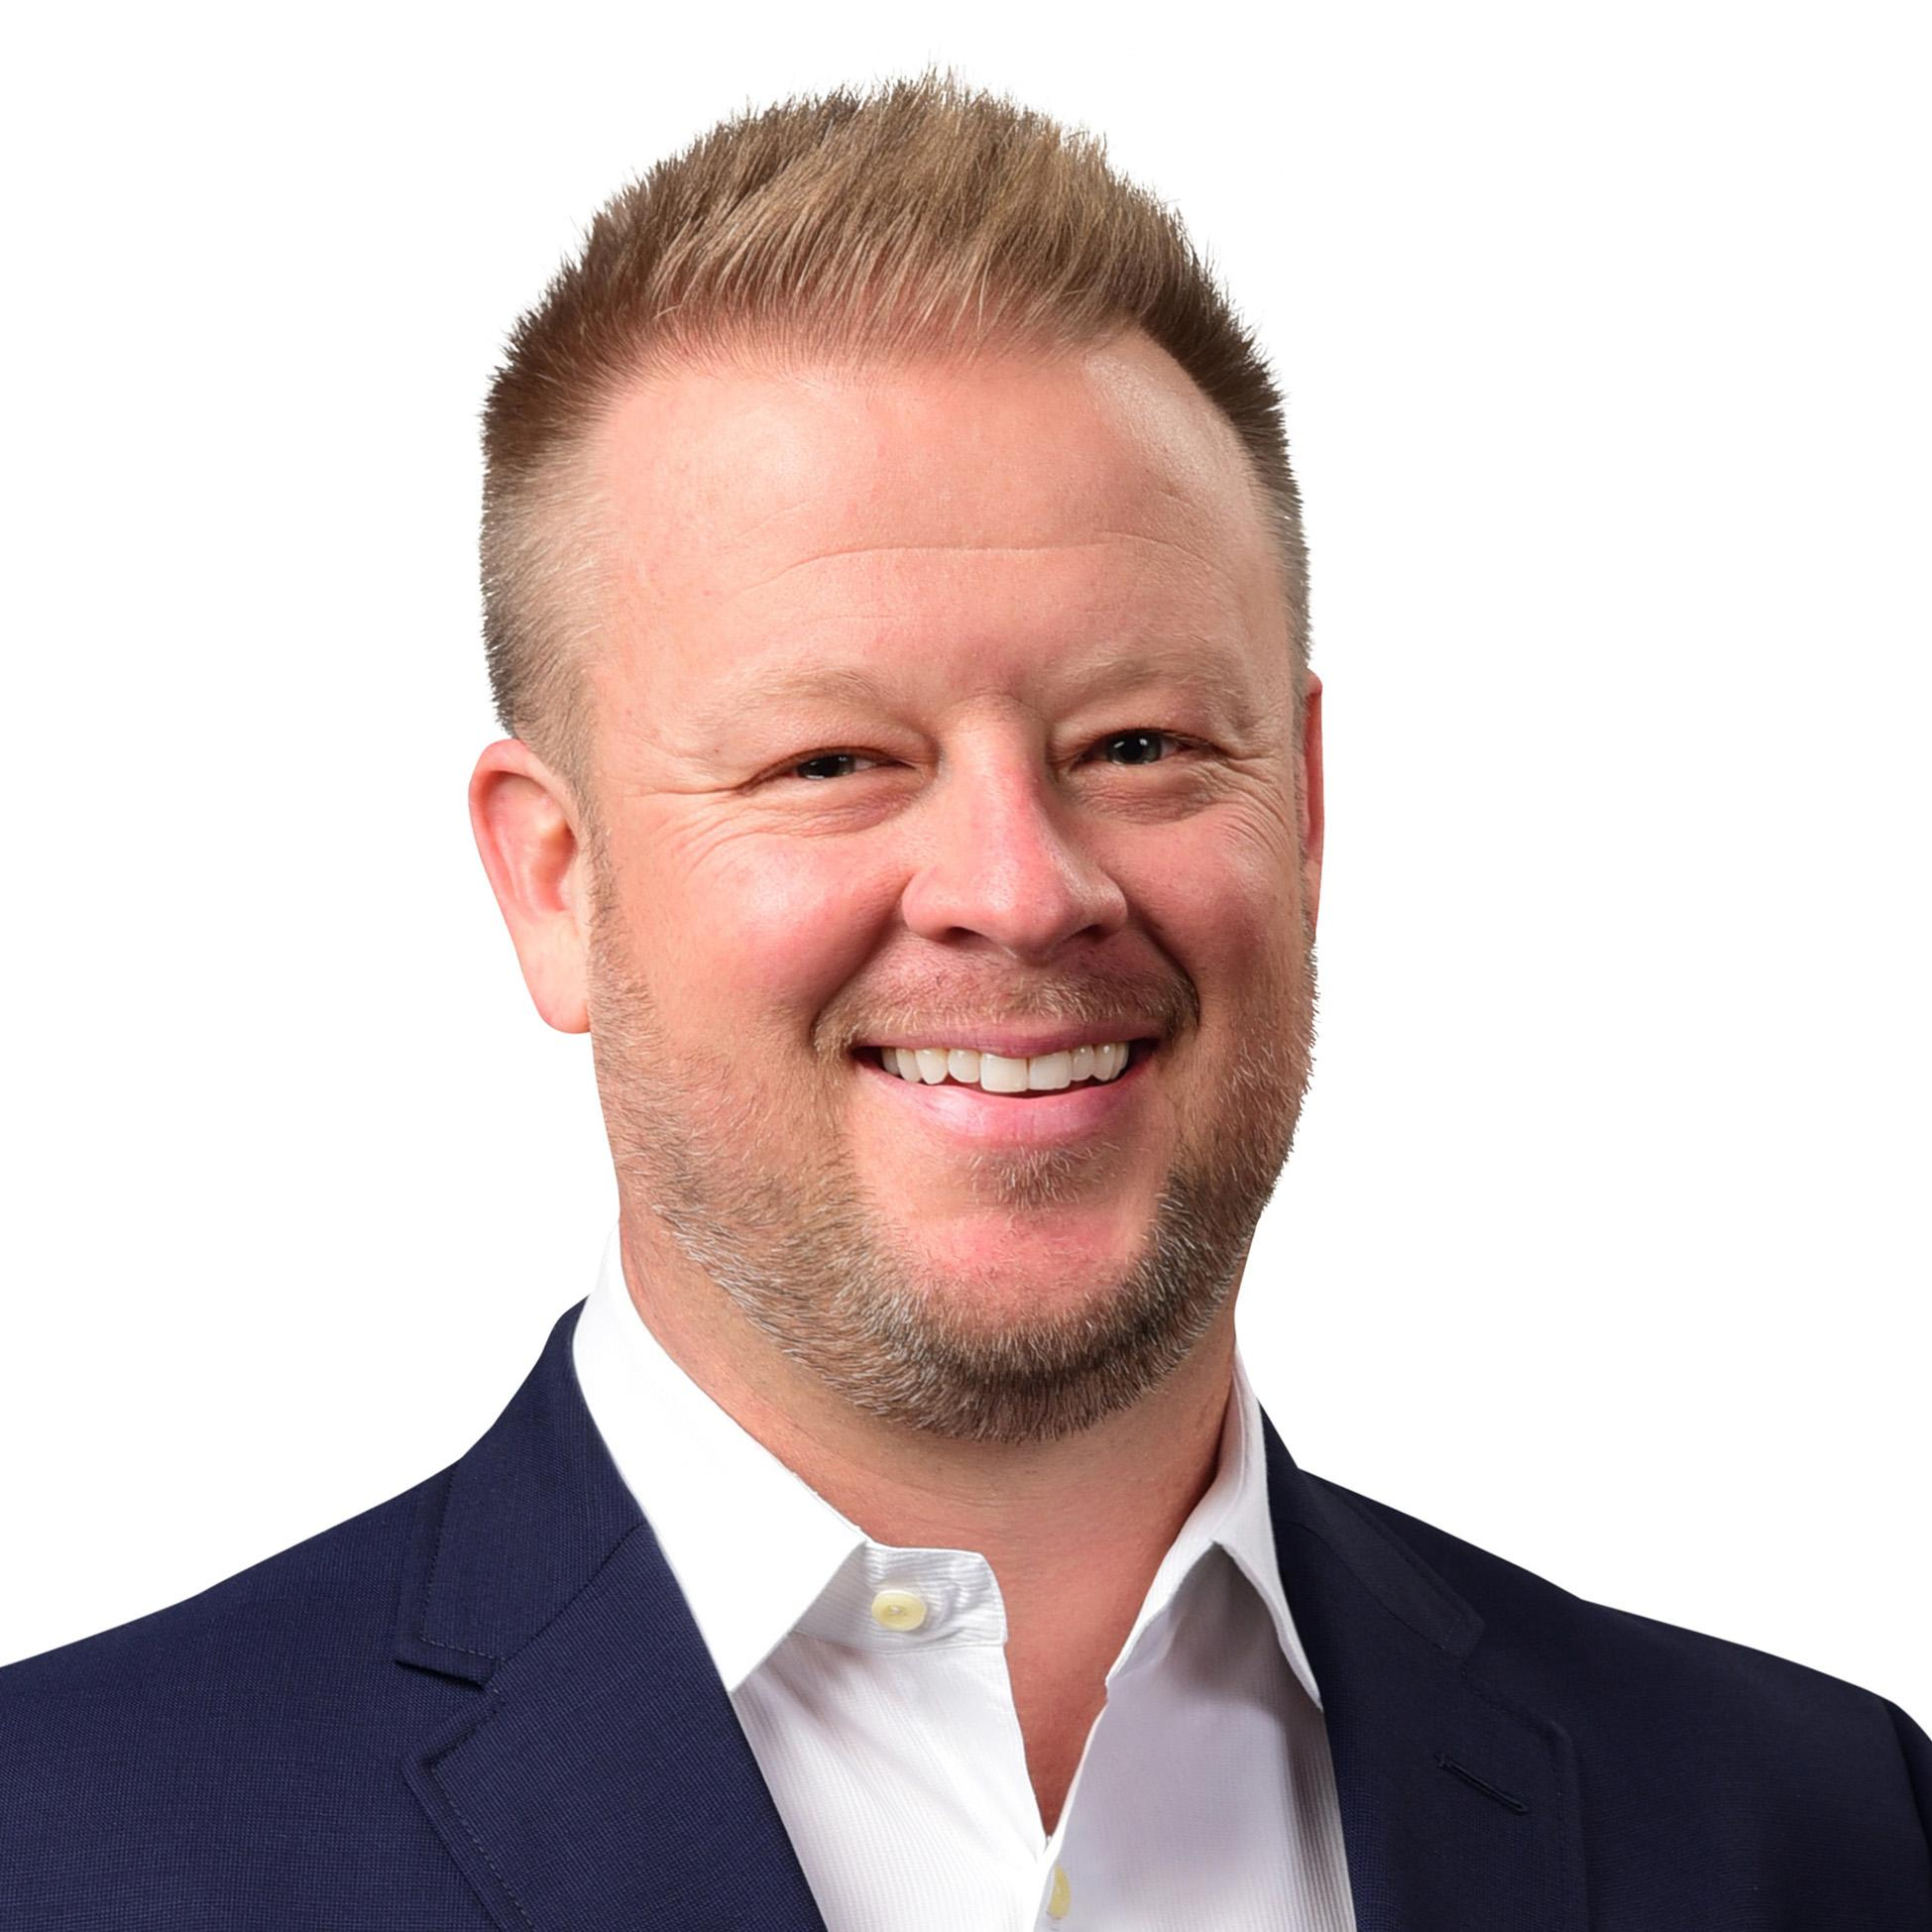 Ron Kaminski, Visionary and Certified EOS Implementer